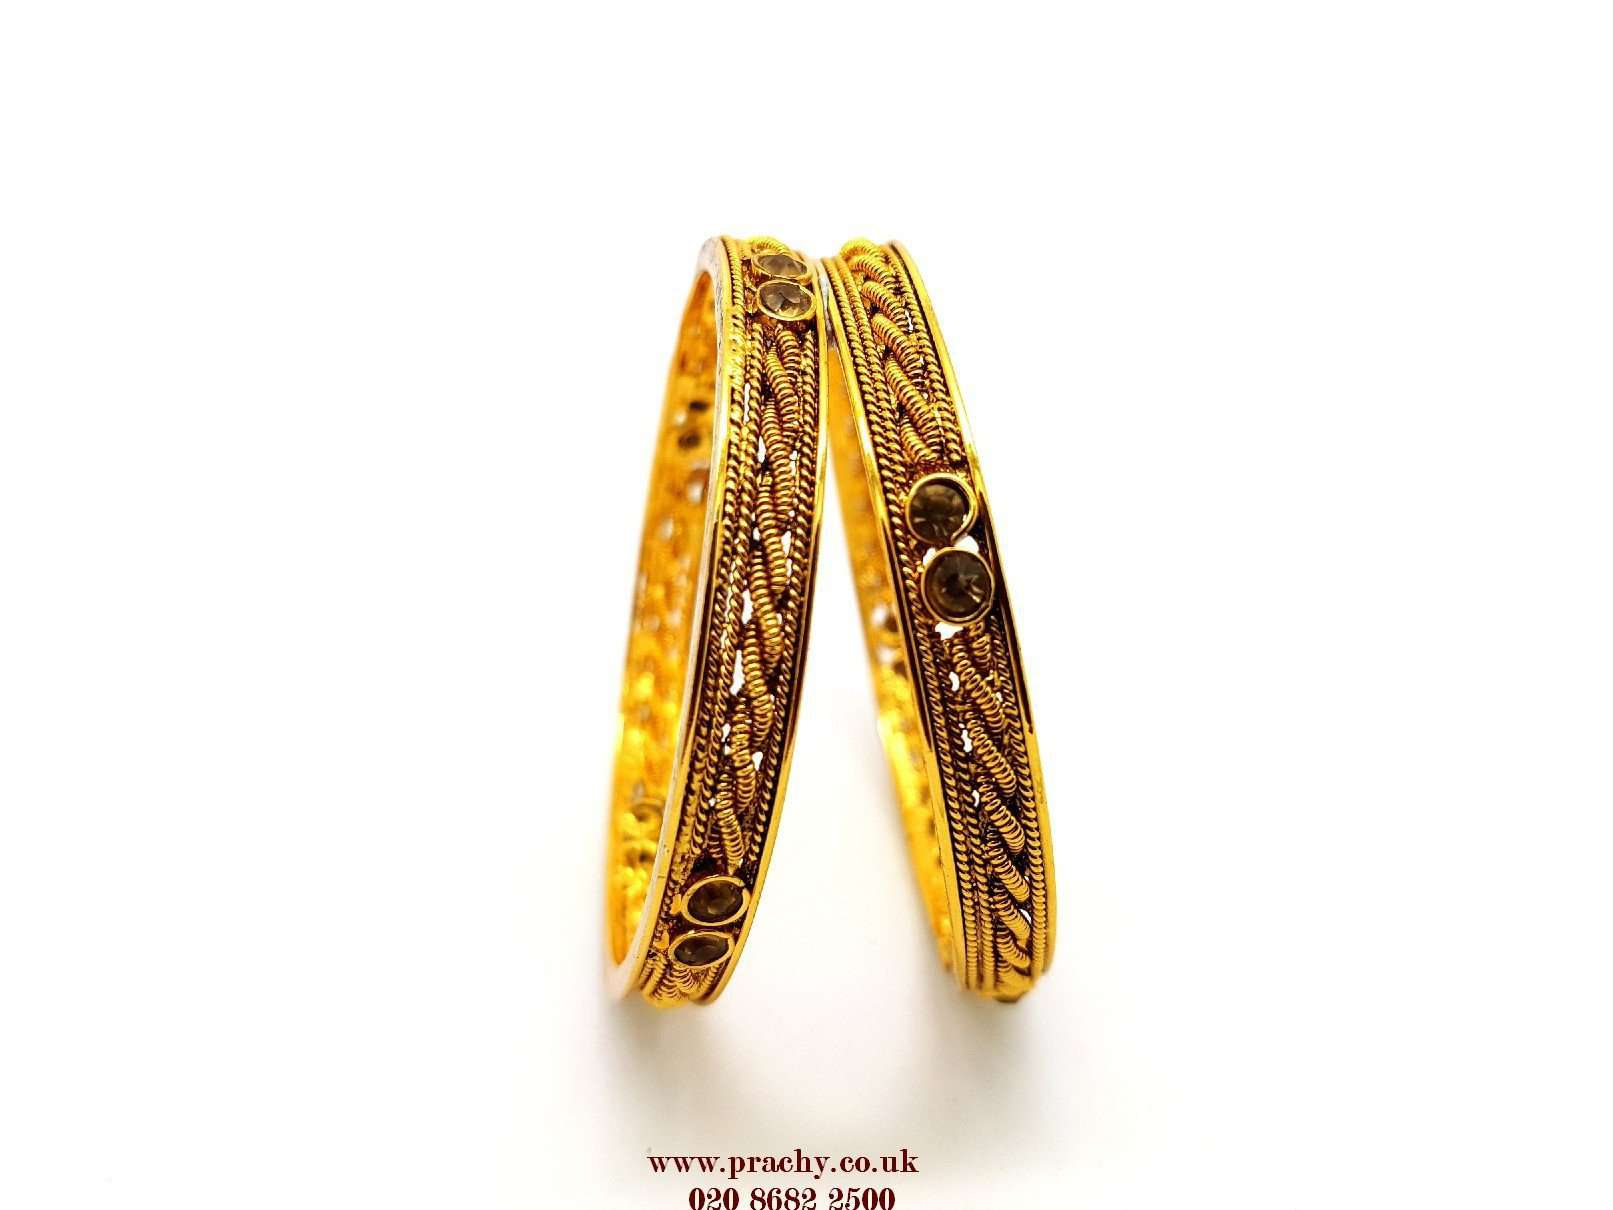 RA 132 kp 0217 - Antique Girls Bangles - (Pair) - Prachy Creations